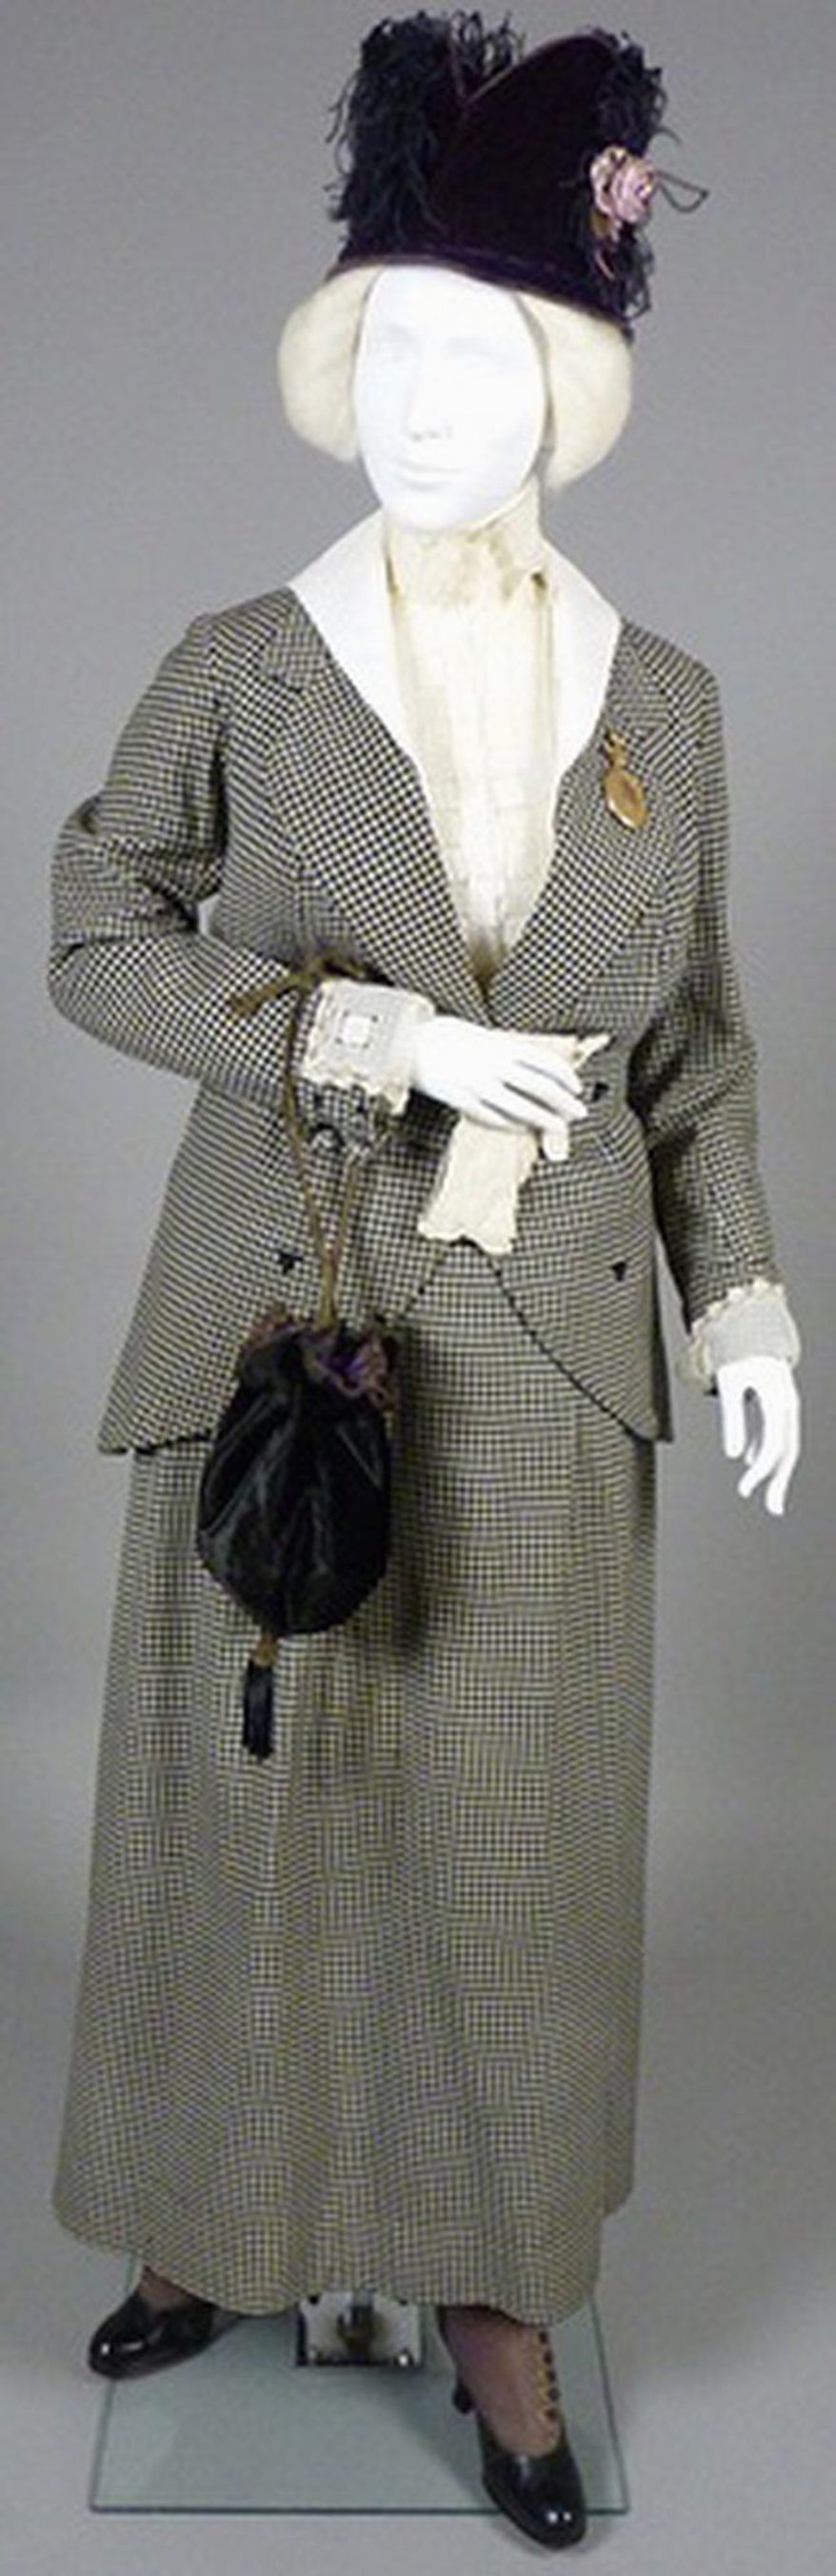 "Exhibit: ""Fashioning the New Woman, 1890-1925"""